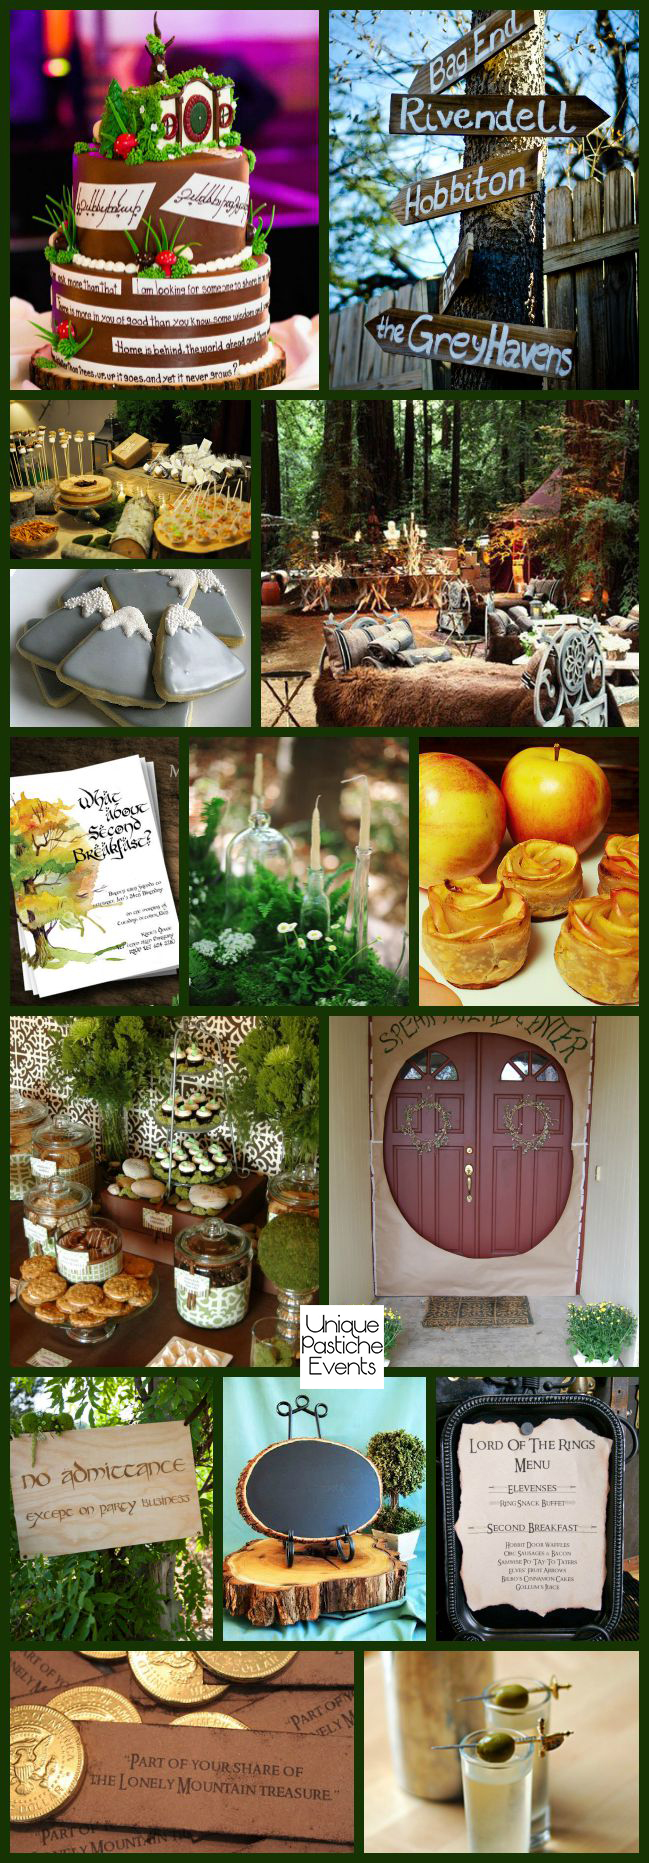 Hobbit Day Woodland Party Ideas